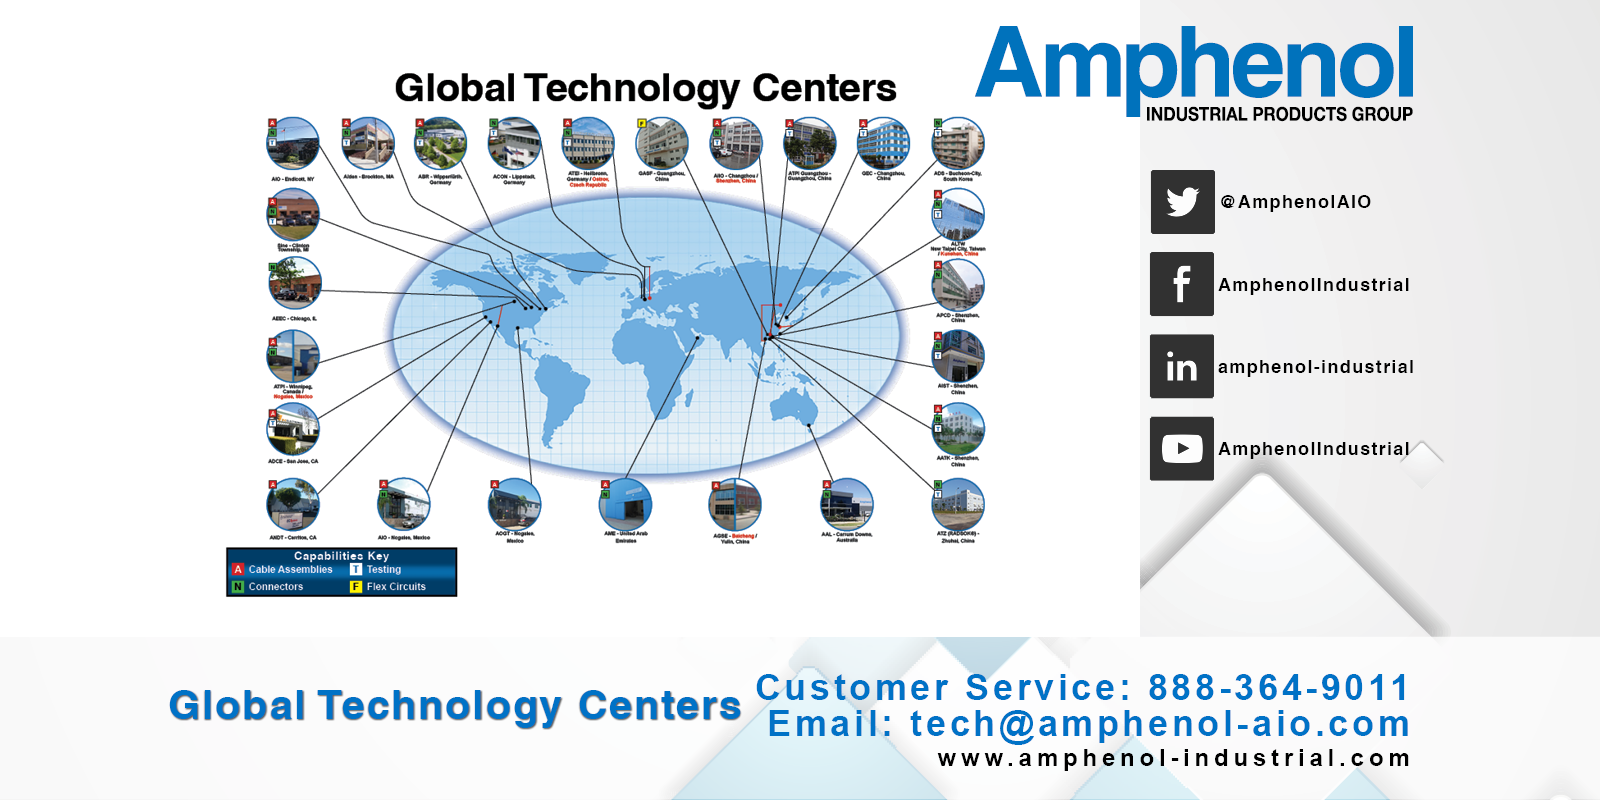 Amphenol Industrial Products Group Global Technology Centers